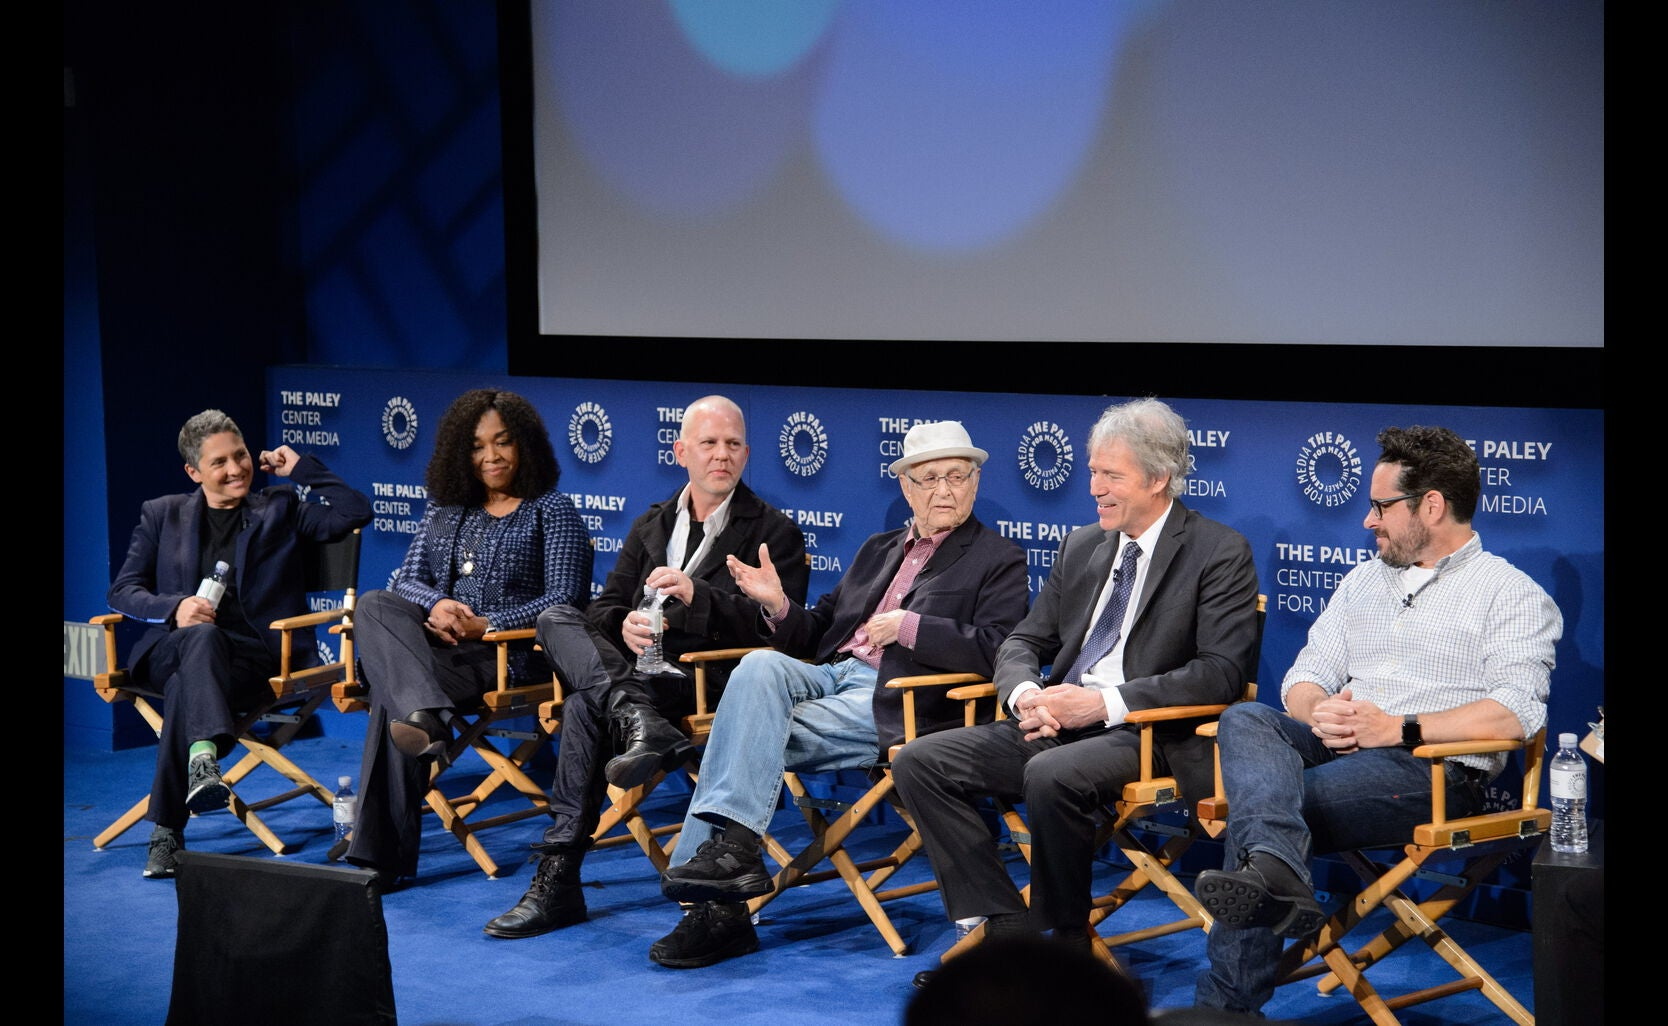 Writer-Producers Shonda Rhimes, Jill Soloway, David E. Kelley, Norman Lear, Ryan Murphy and J. J. Ab